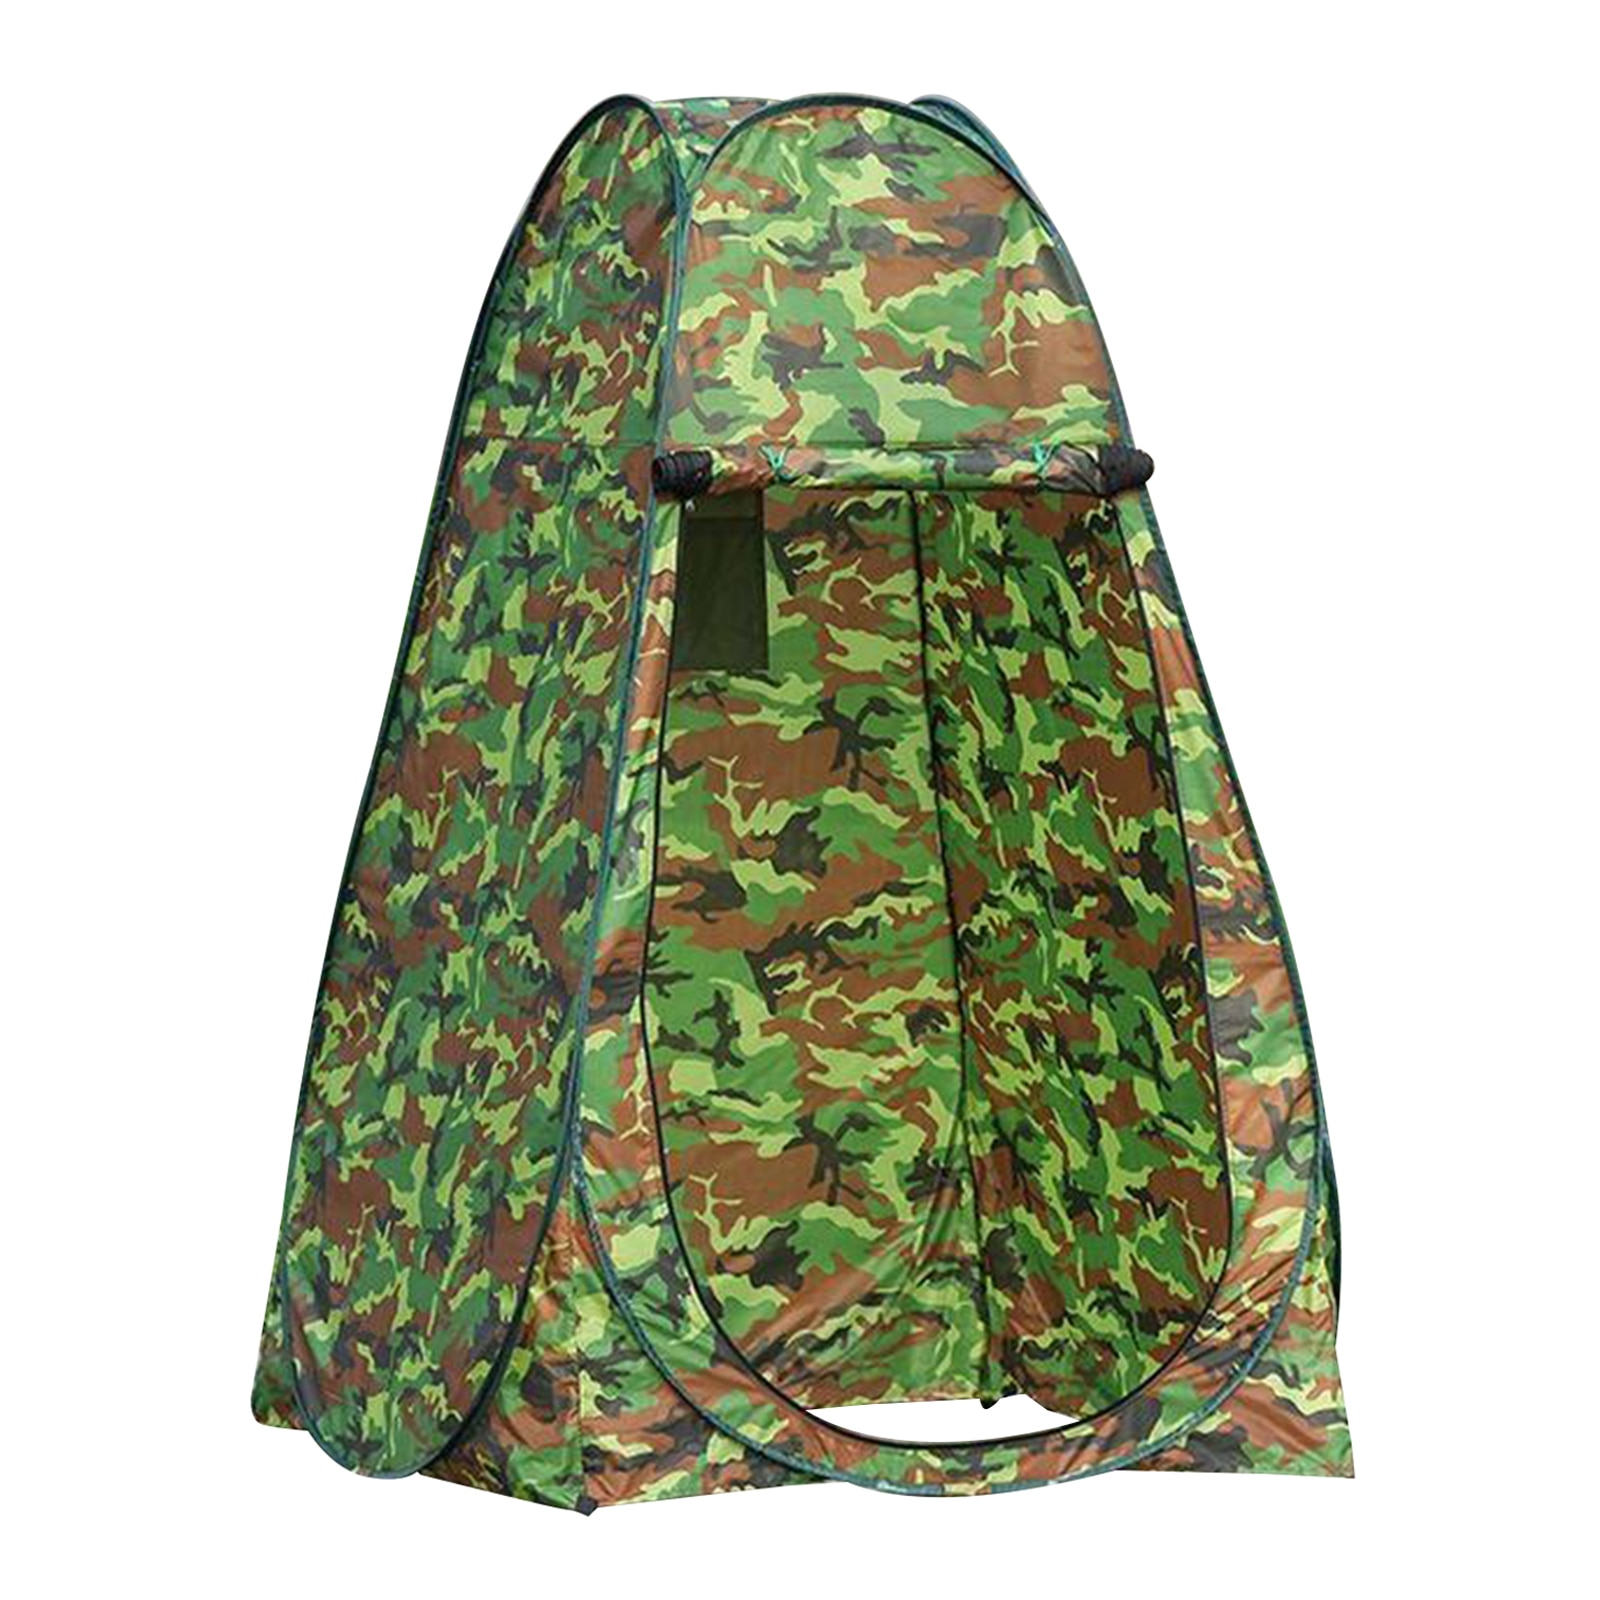 Portable Outdoor Up Toilet Shower/Cing/Utility Privacy Tent Shelter